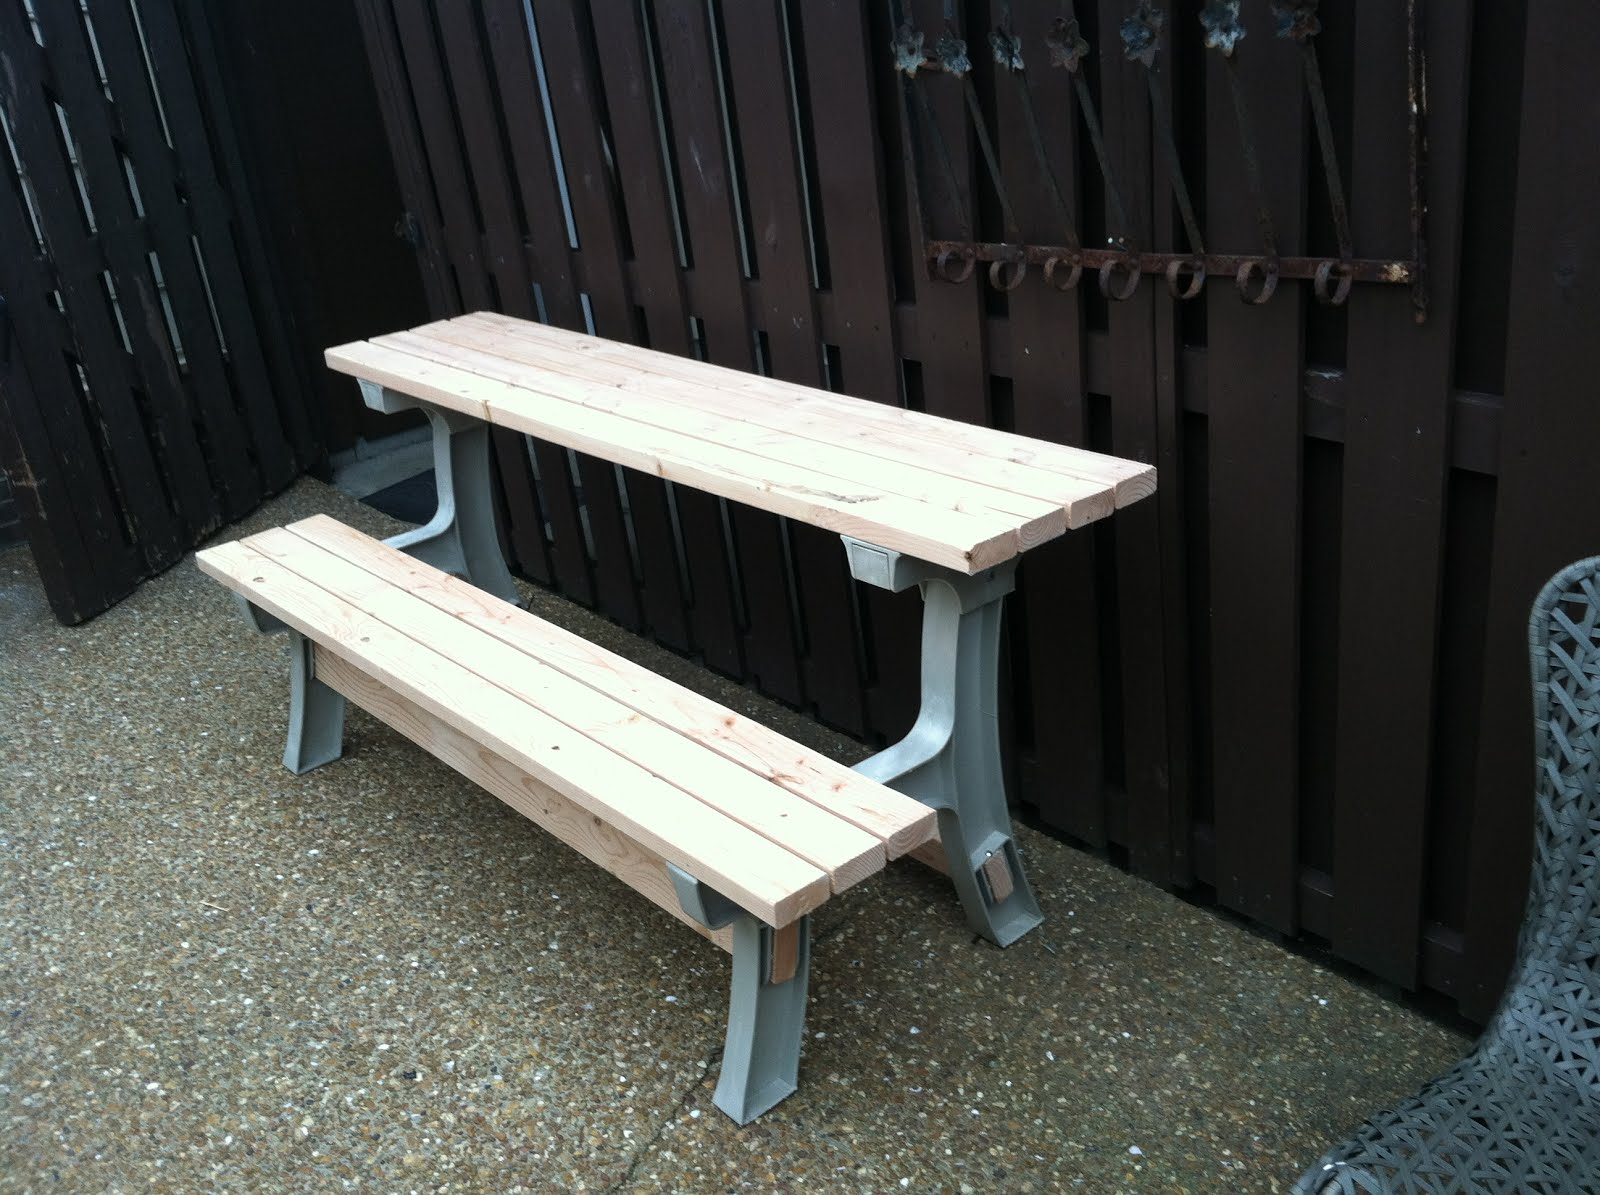 Bench W/Tilt Back - Converts to a Half PicNic Table